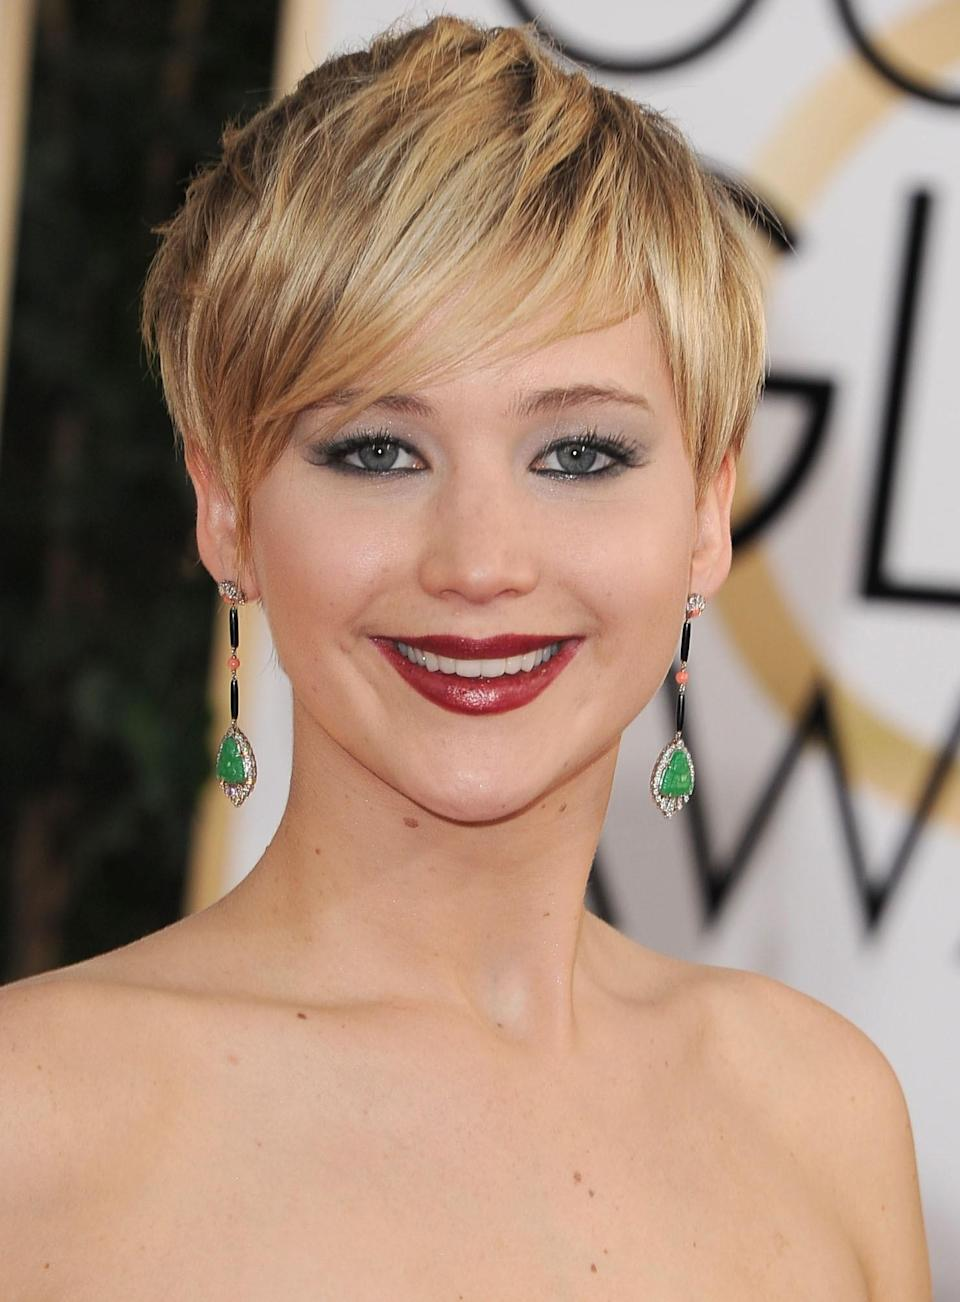 J.Law's layers are long and shaggy while still looking totally polished.